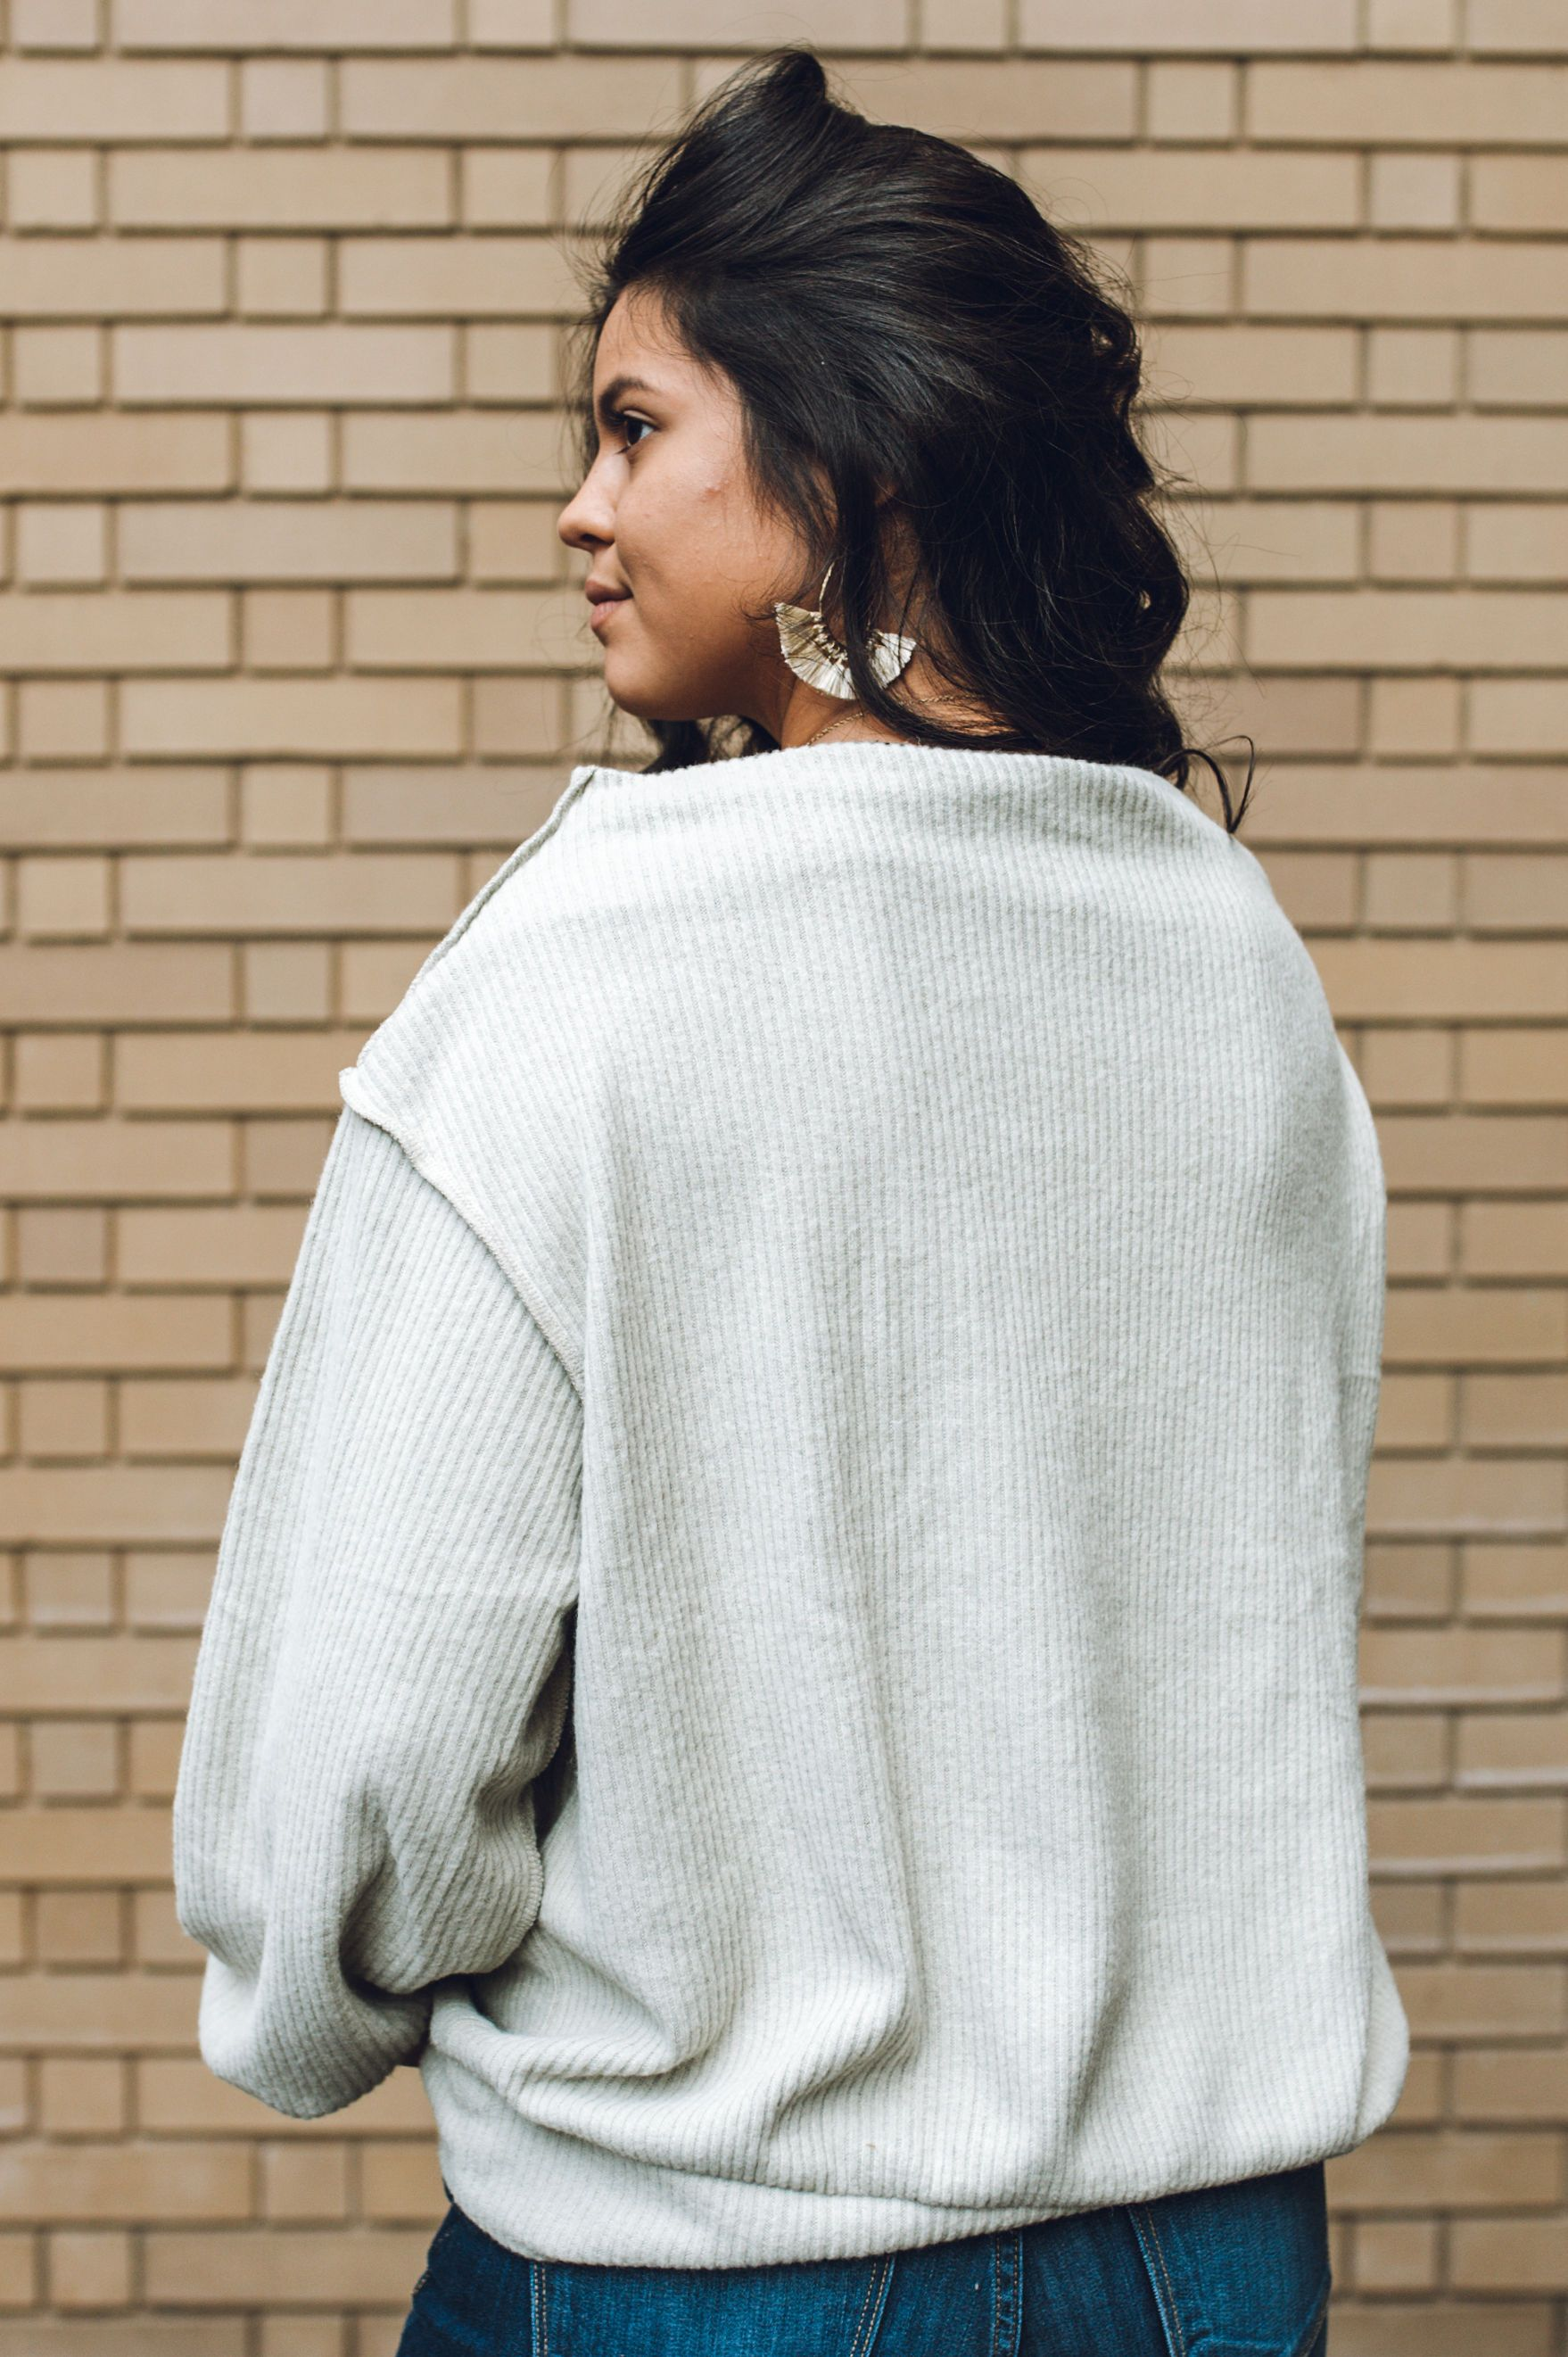 The Call of Fall Sweater